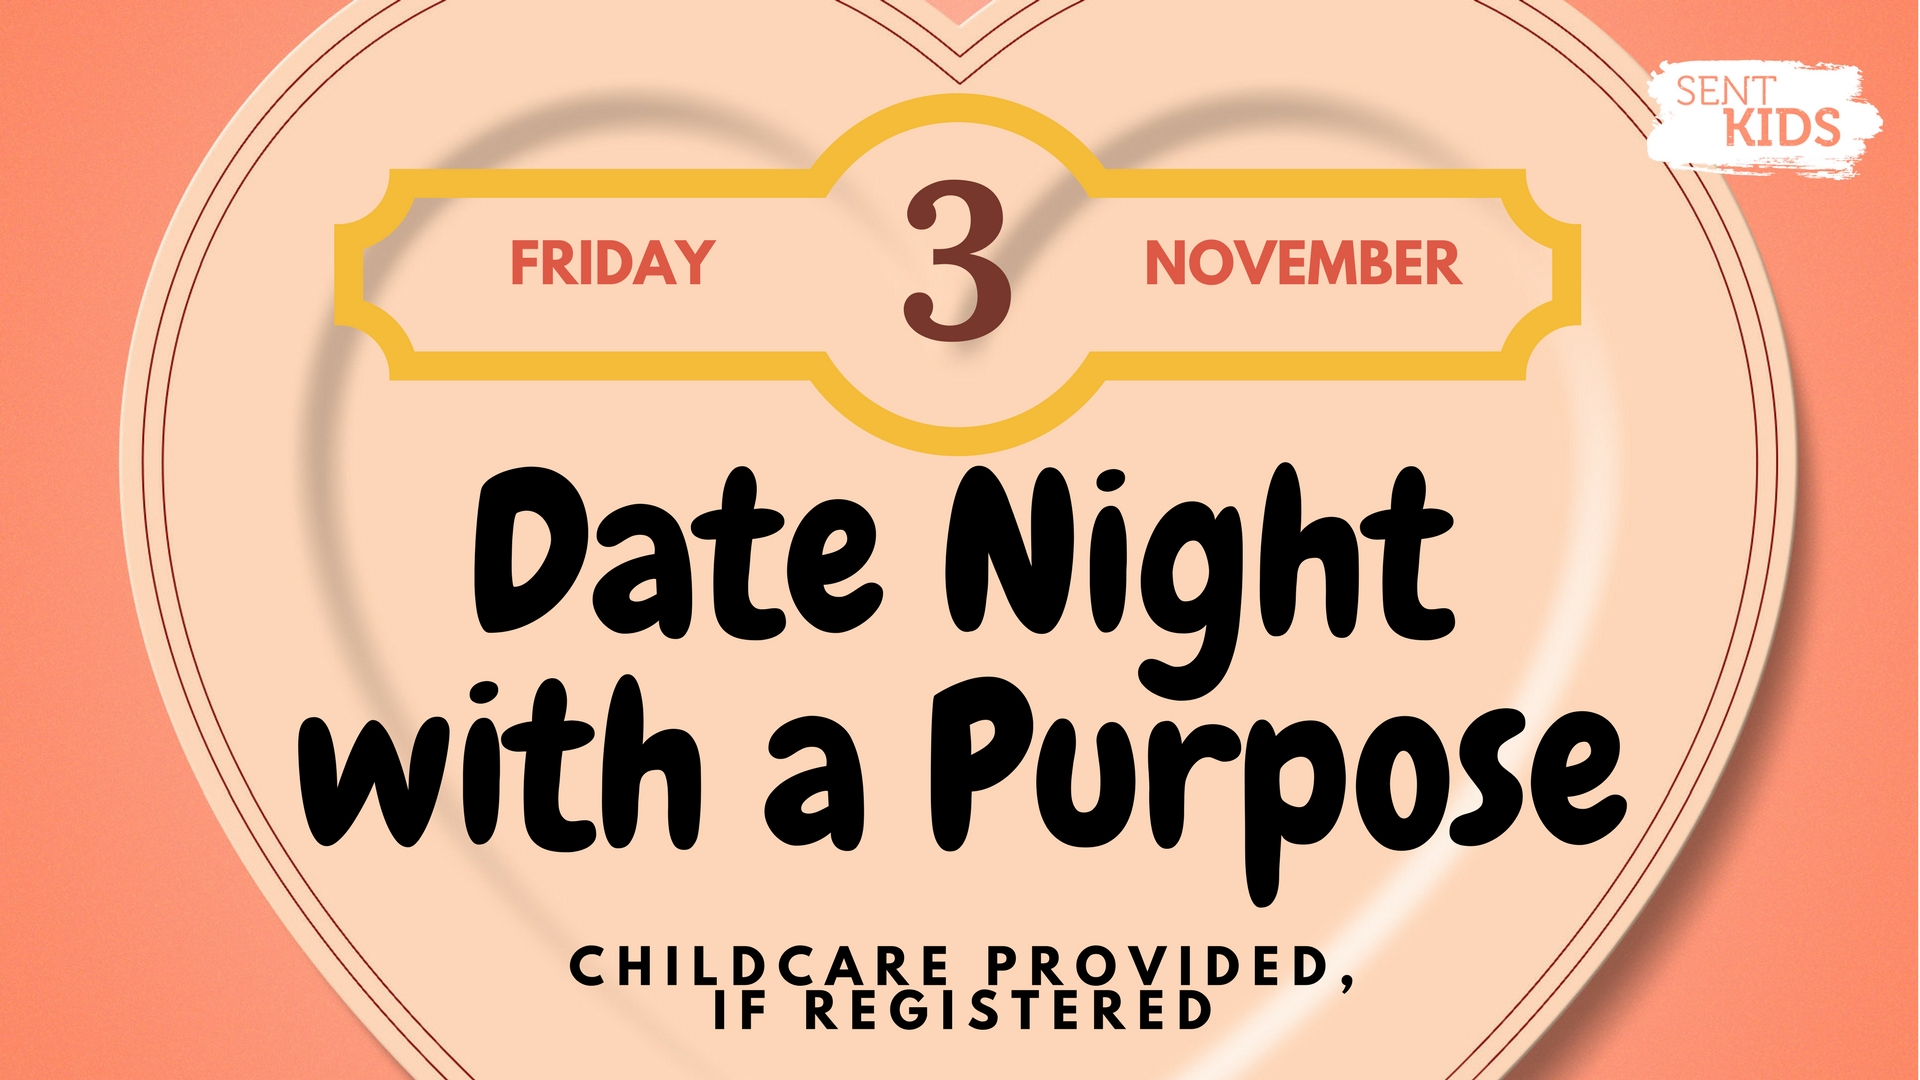 Date night with a purpose